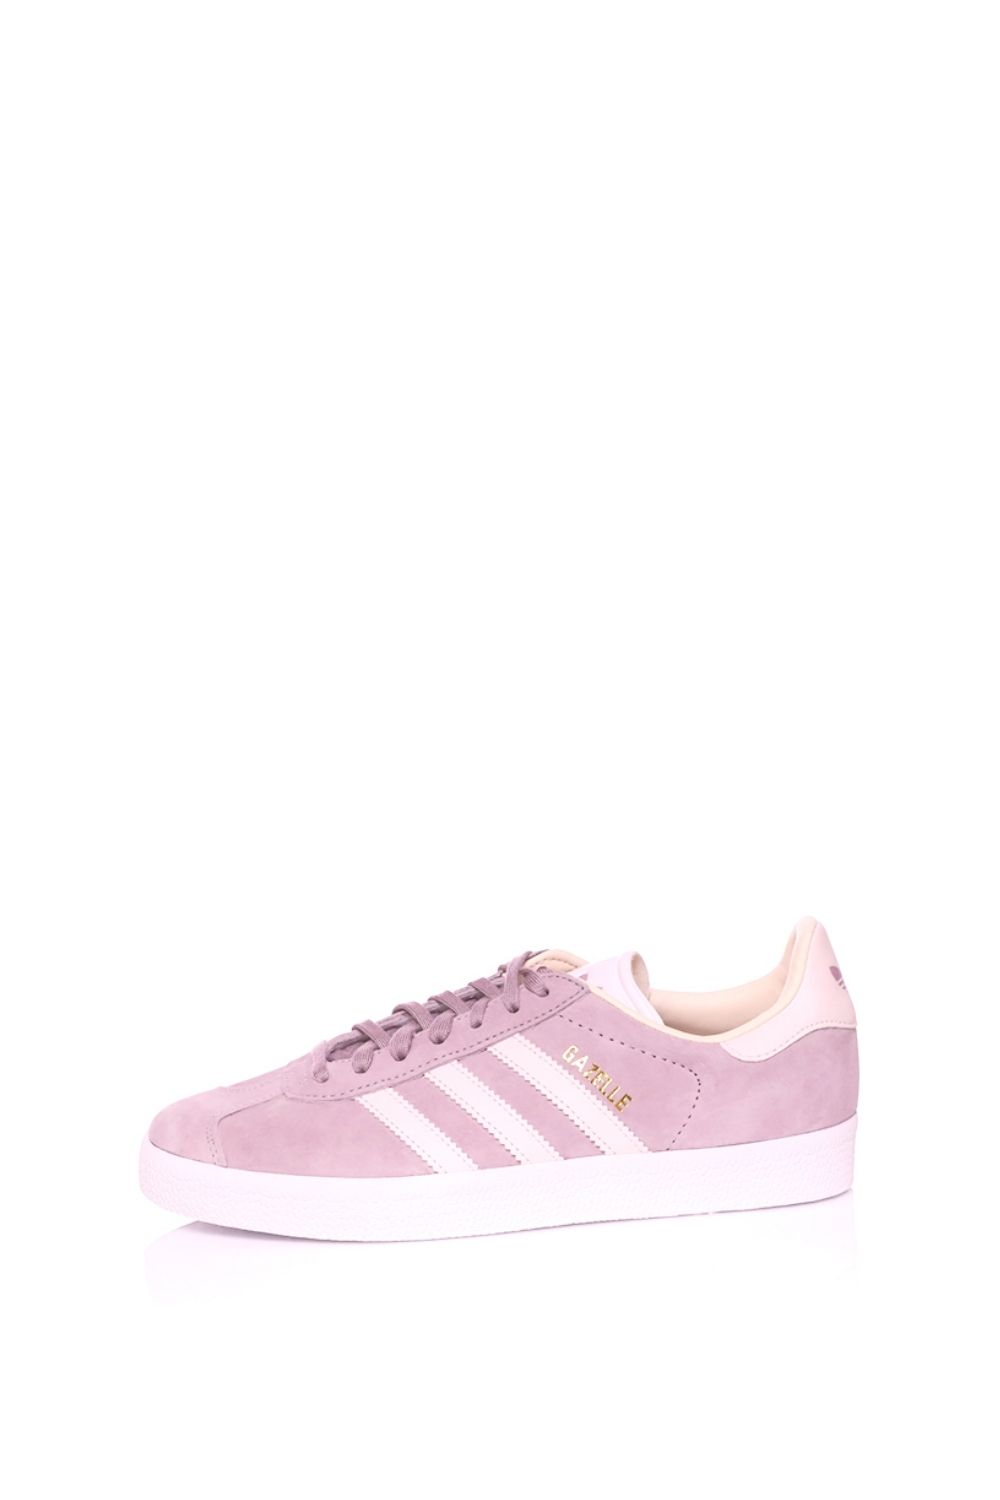 premium selection c8150 3f963 Collective Online adidas Originals – Γυναικεία sneakers adidas GAZELLE μοβ